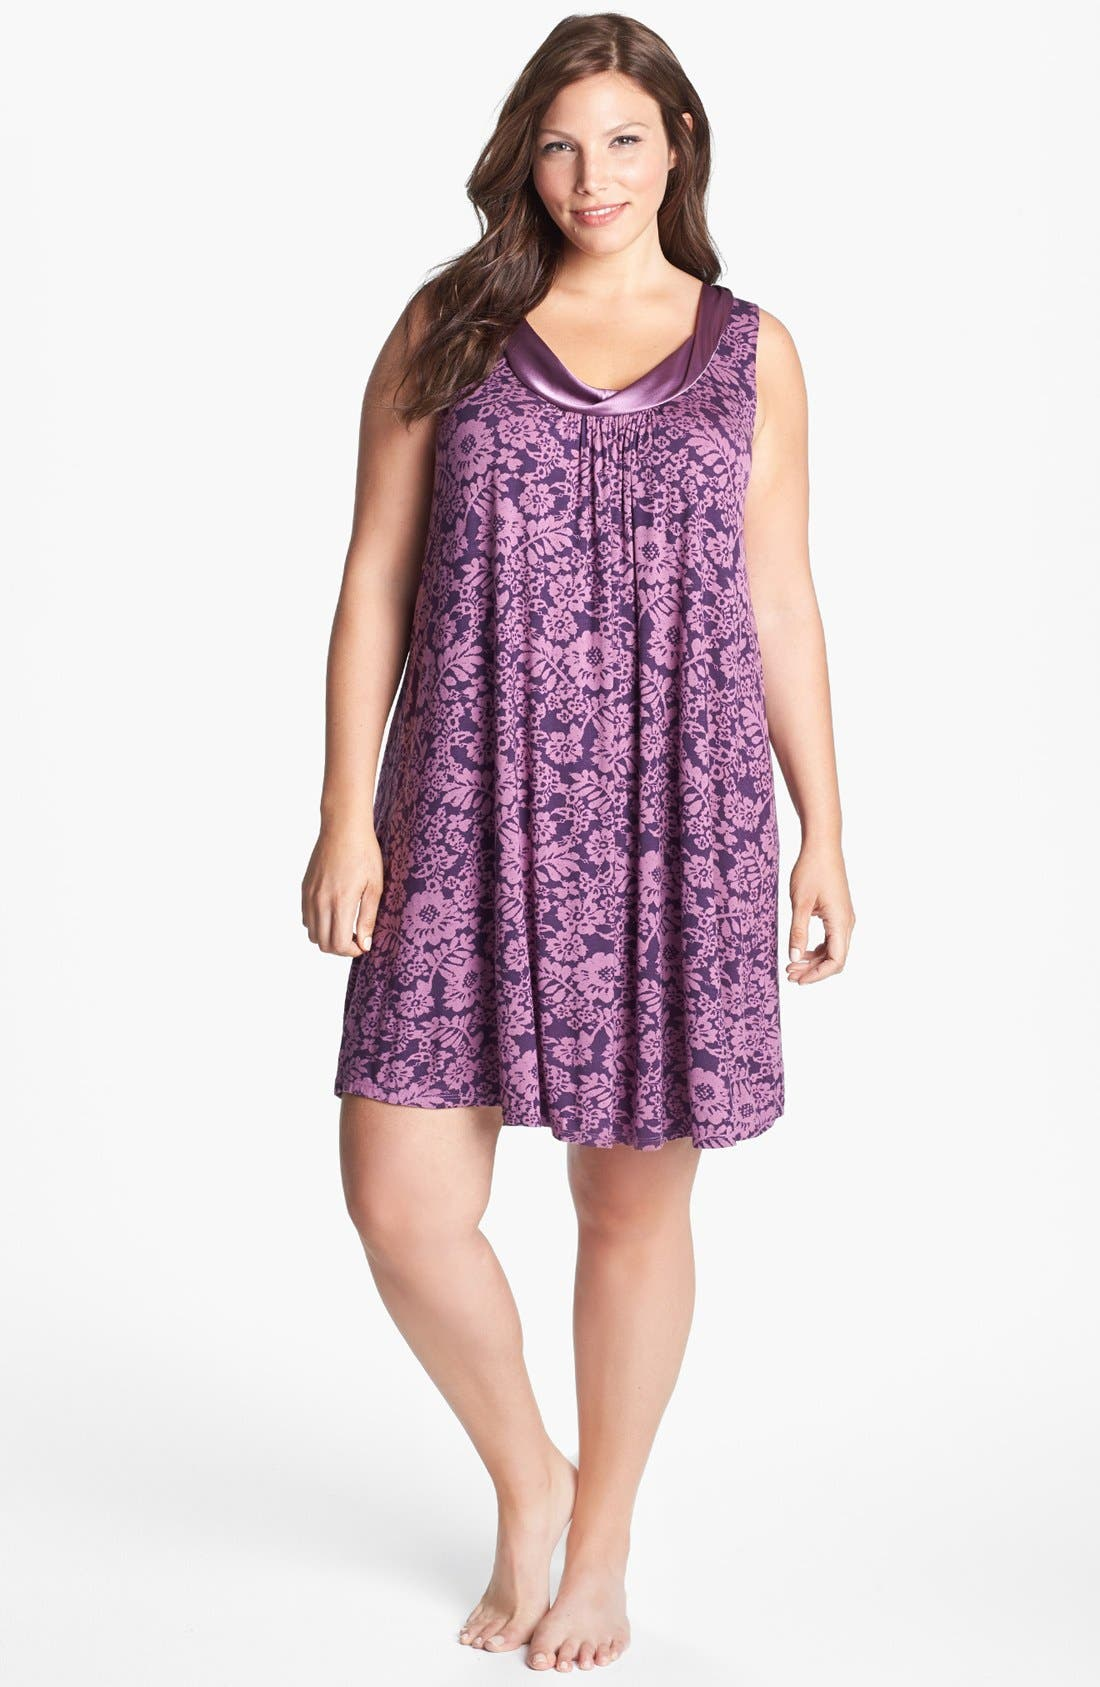 Main Image - Midnight by Carole Hochman 'Forever & Always' Chemise (Plus Size) (Online Only)